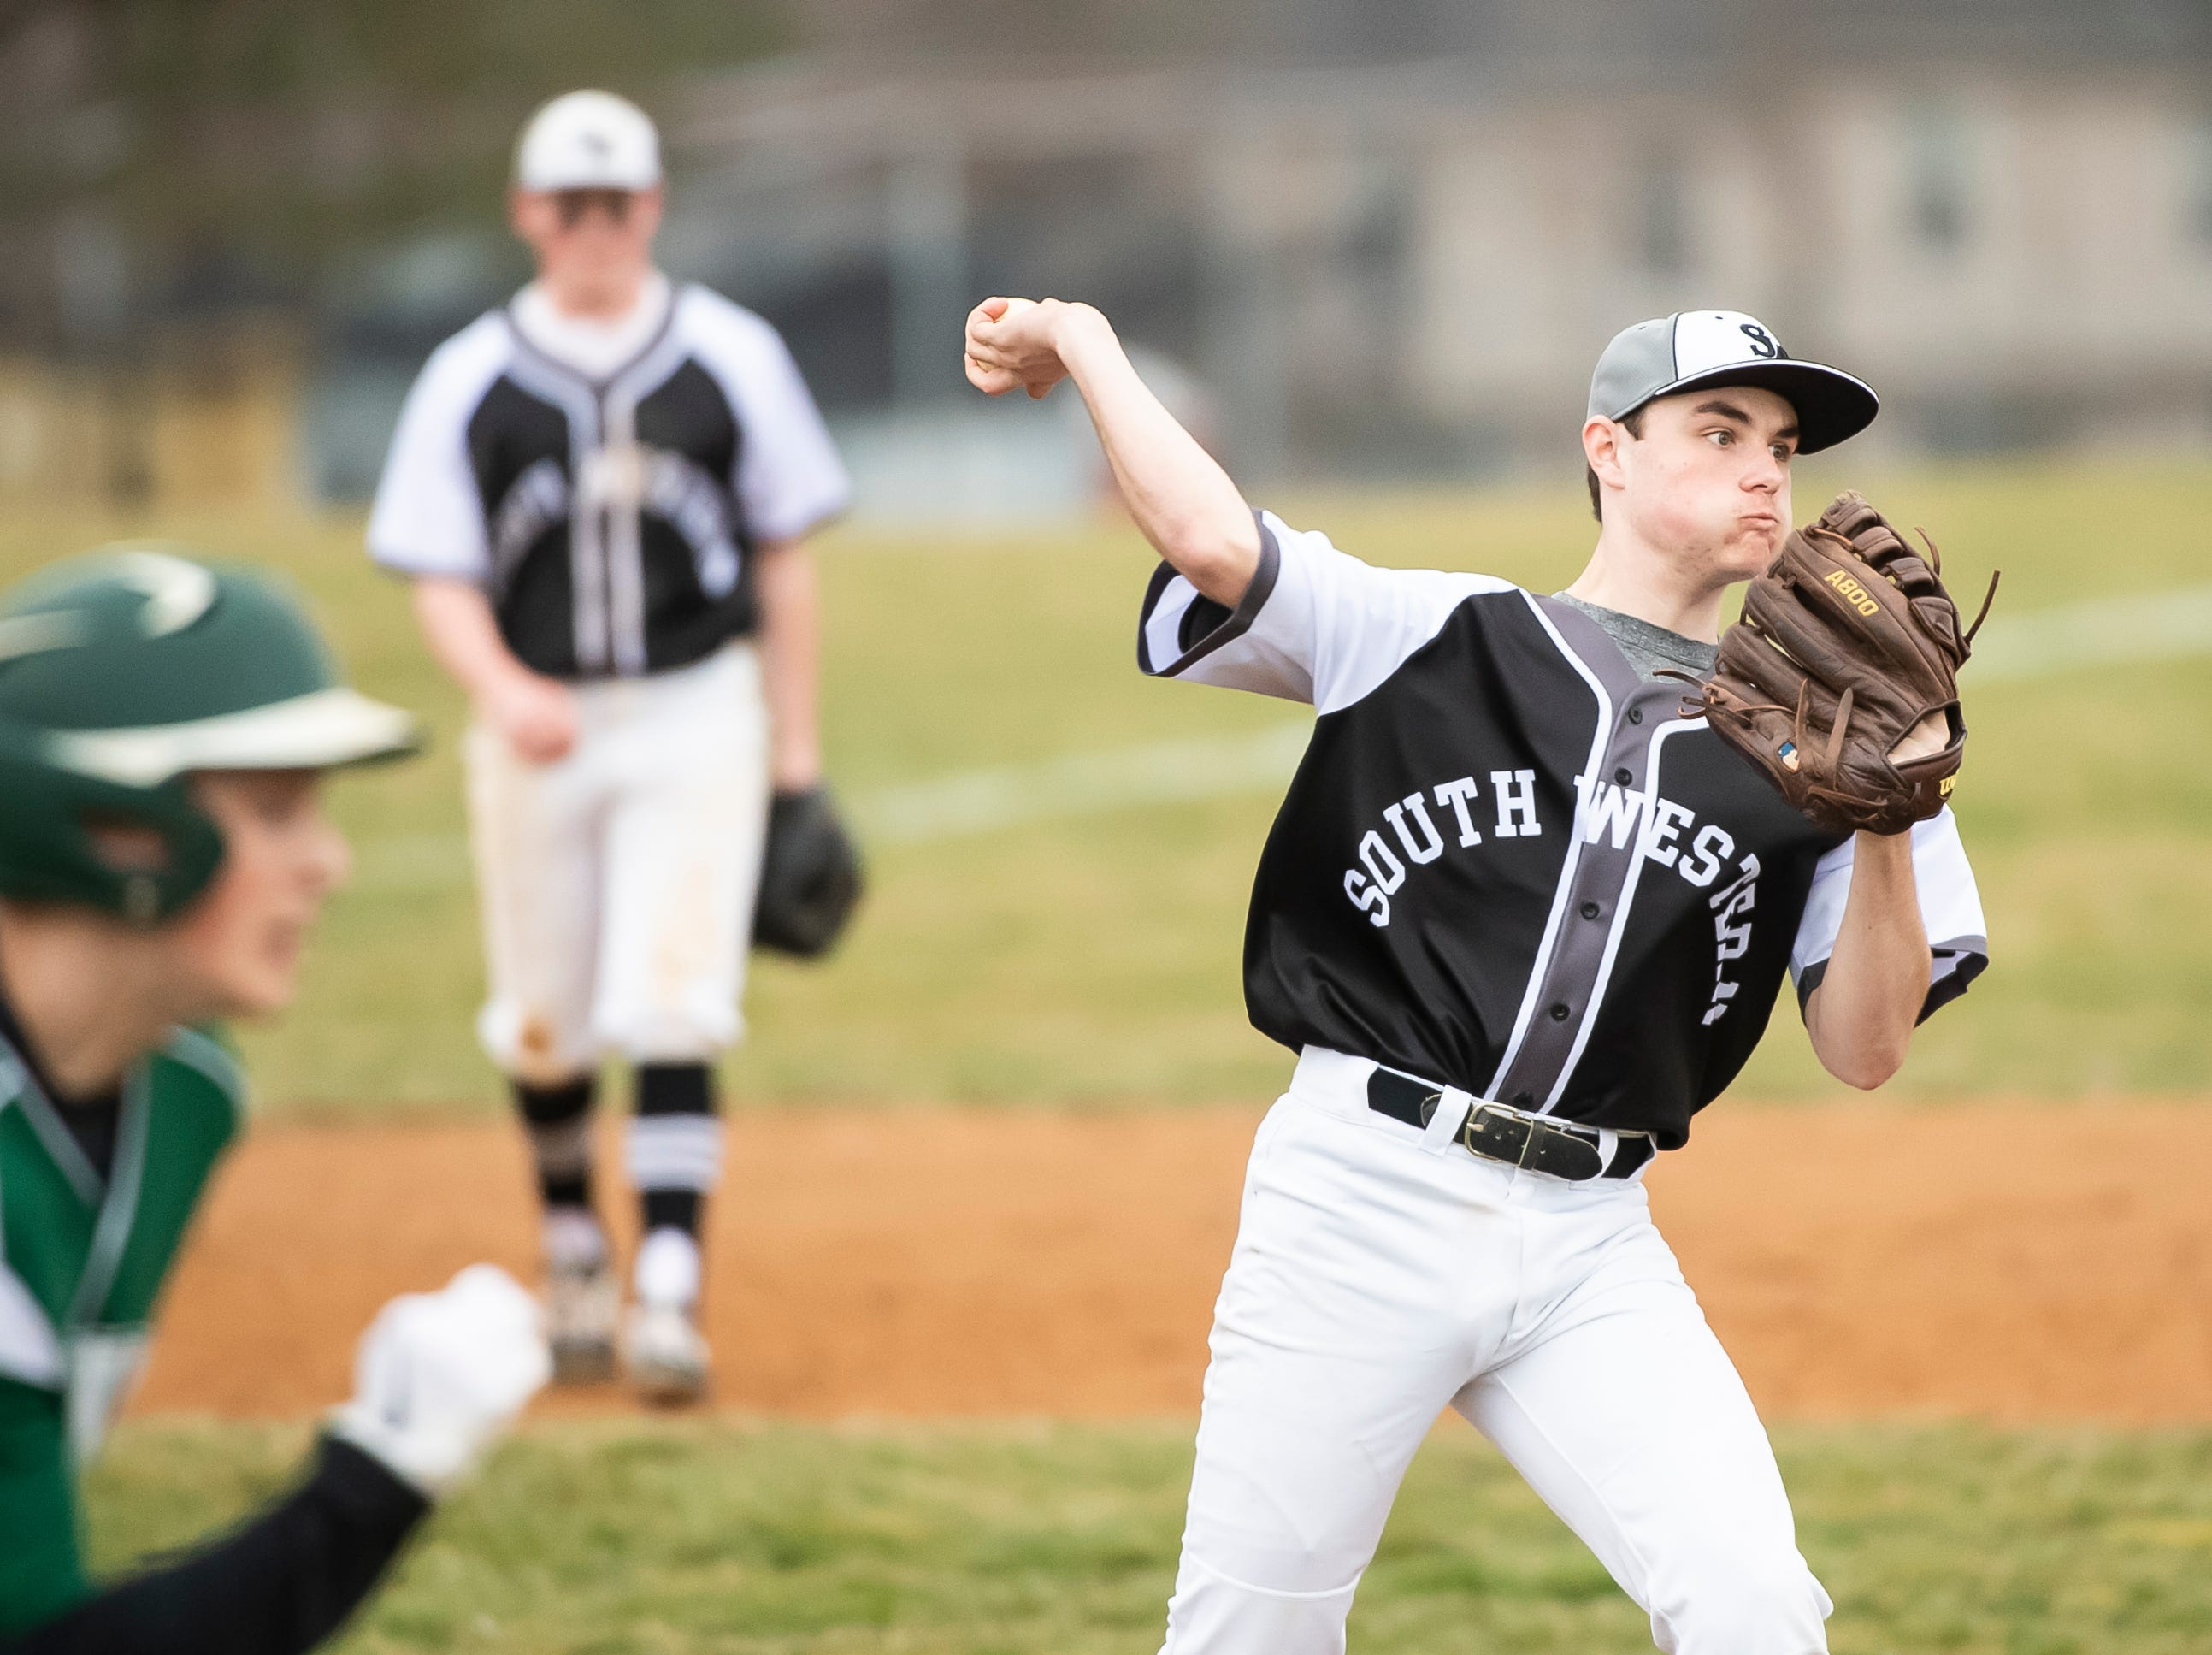 South Western pitcher Zachary Weaver throws the ball to first to record an out during a game against Carlisle in Hanover on Friday, March 29, 2019. The Mustangs won 11-9.